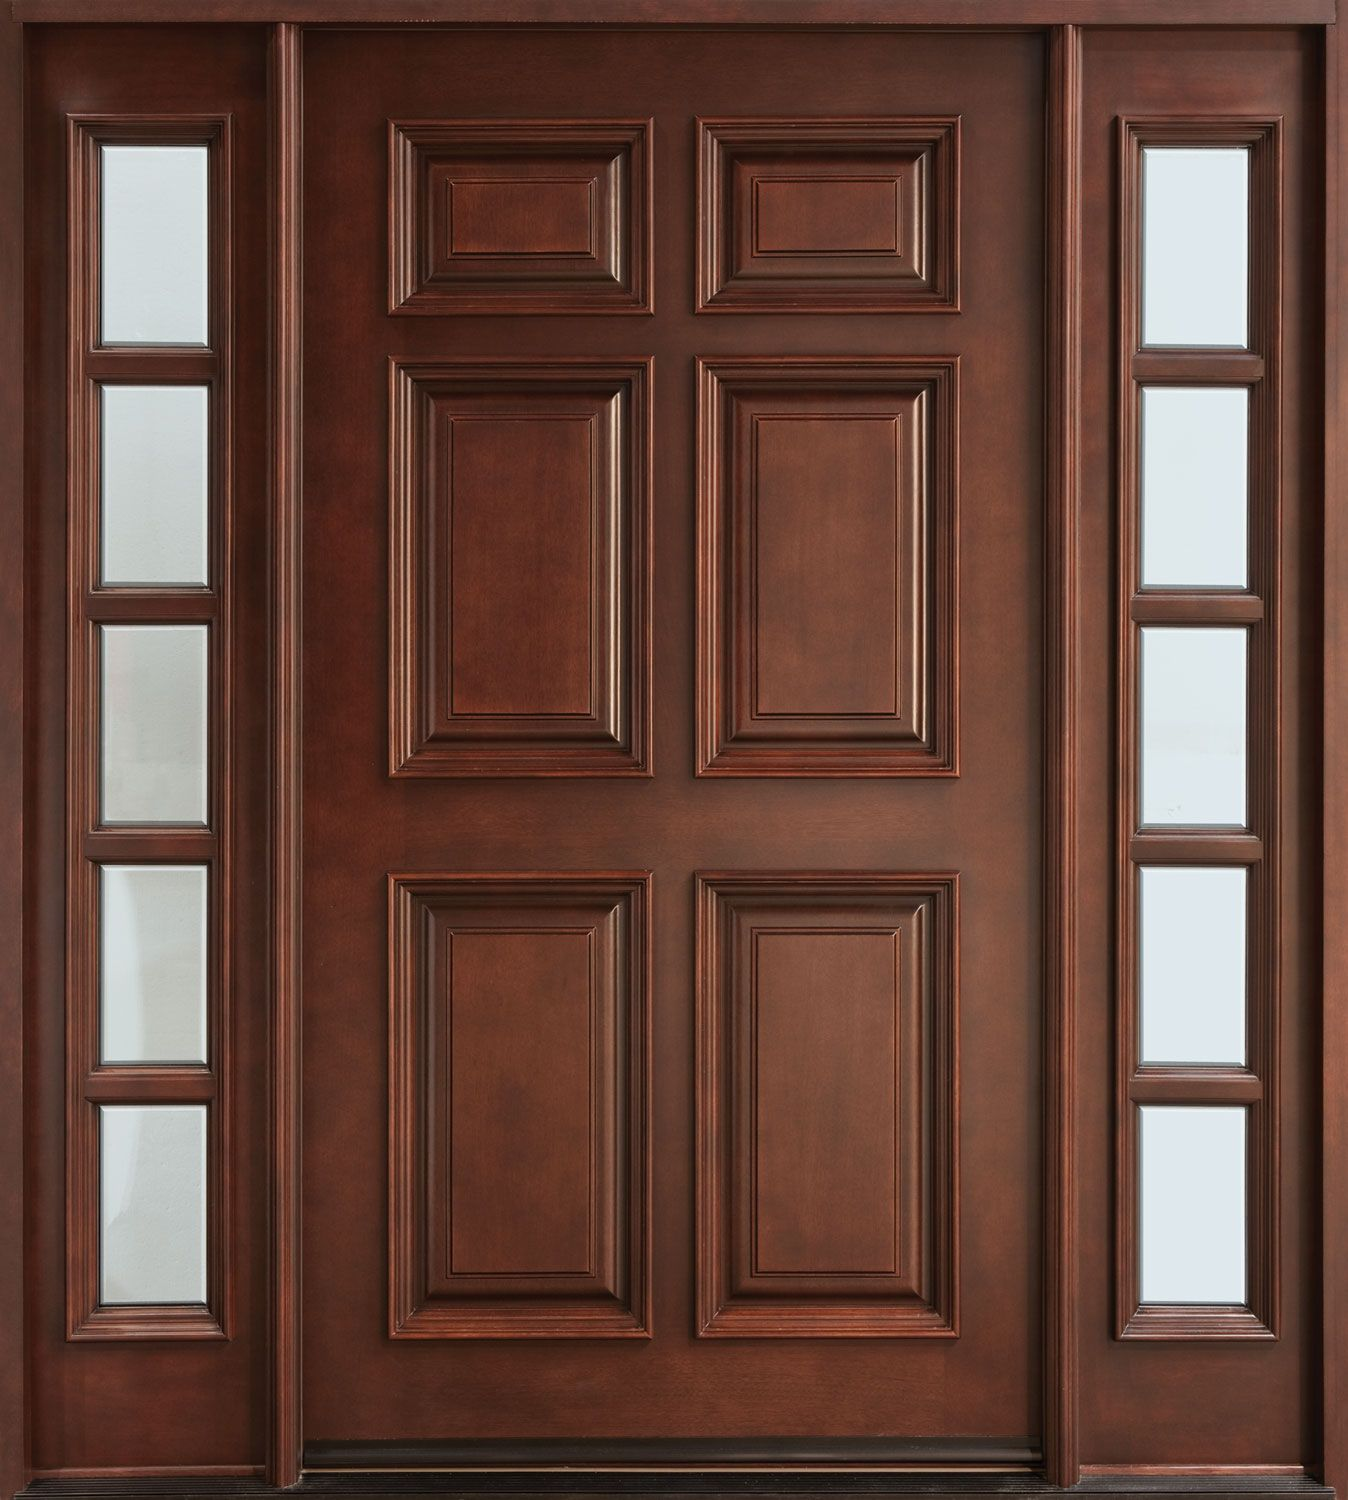 Wood Doors Simpson Door has built handcrafted solid wood doors since 1912 Masonite combines a long standing spirit  sc 1 st  Pinterest : wood door - pezcame.com